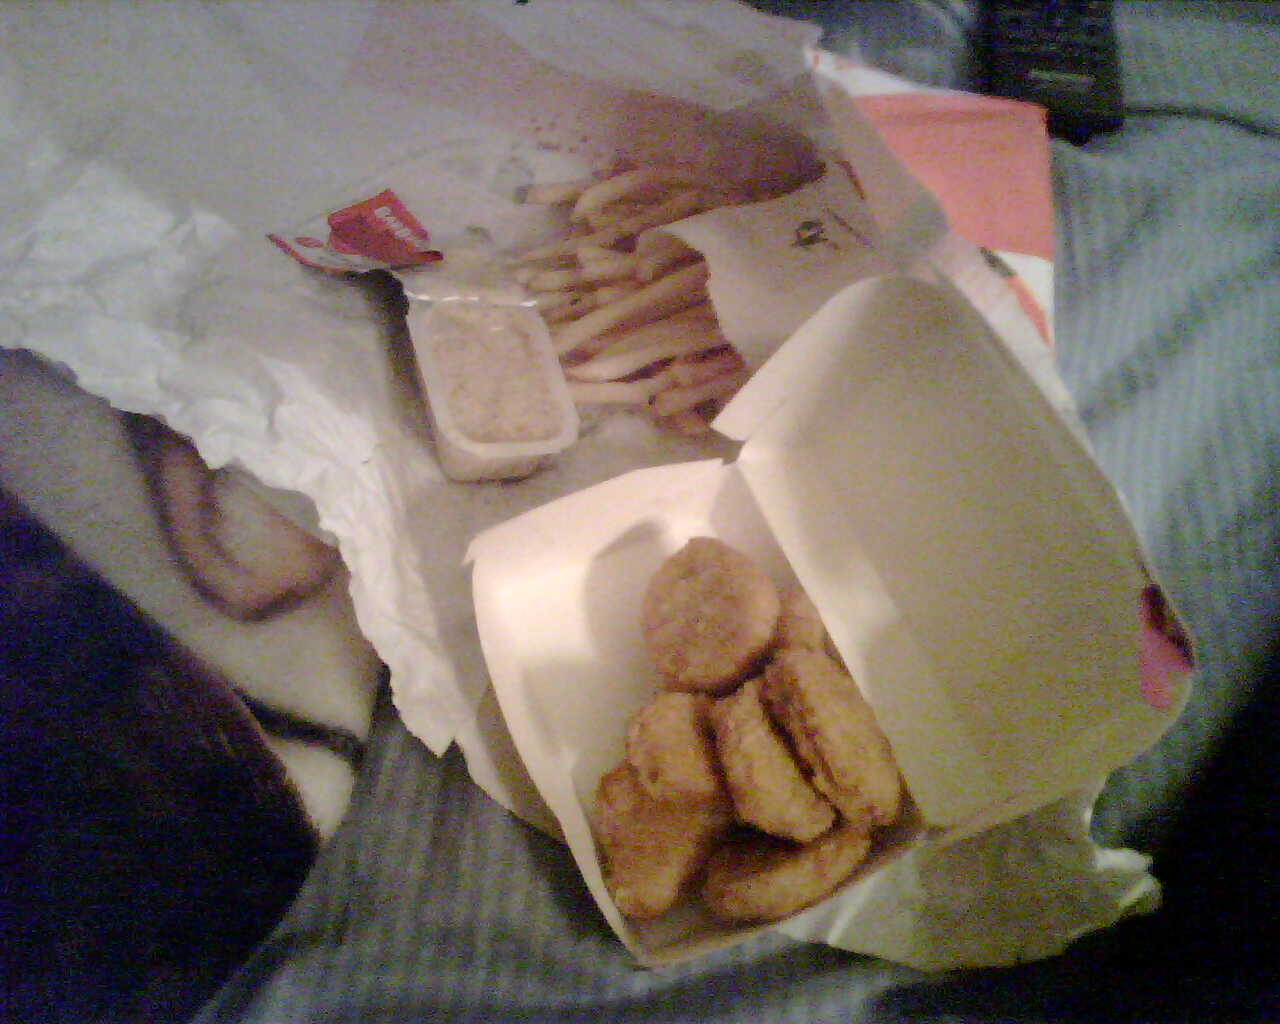 and finally some mcnuggets to round it off. i had so much fun ruth!